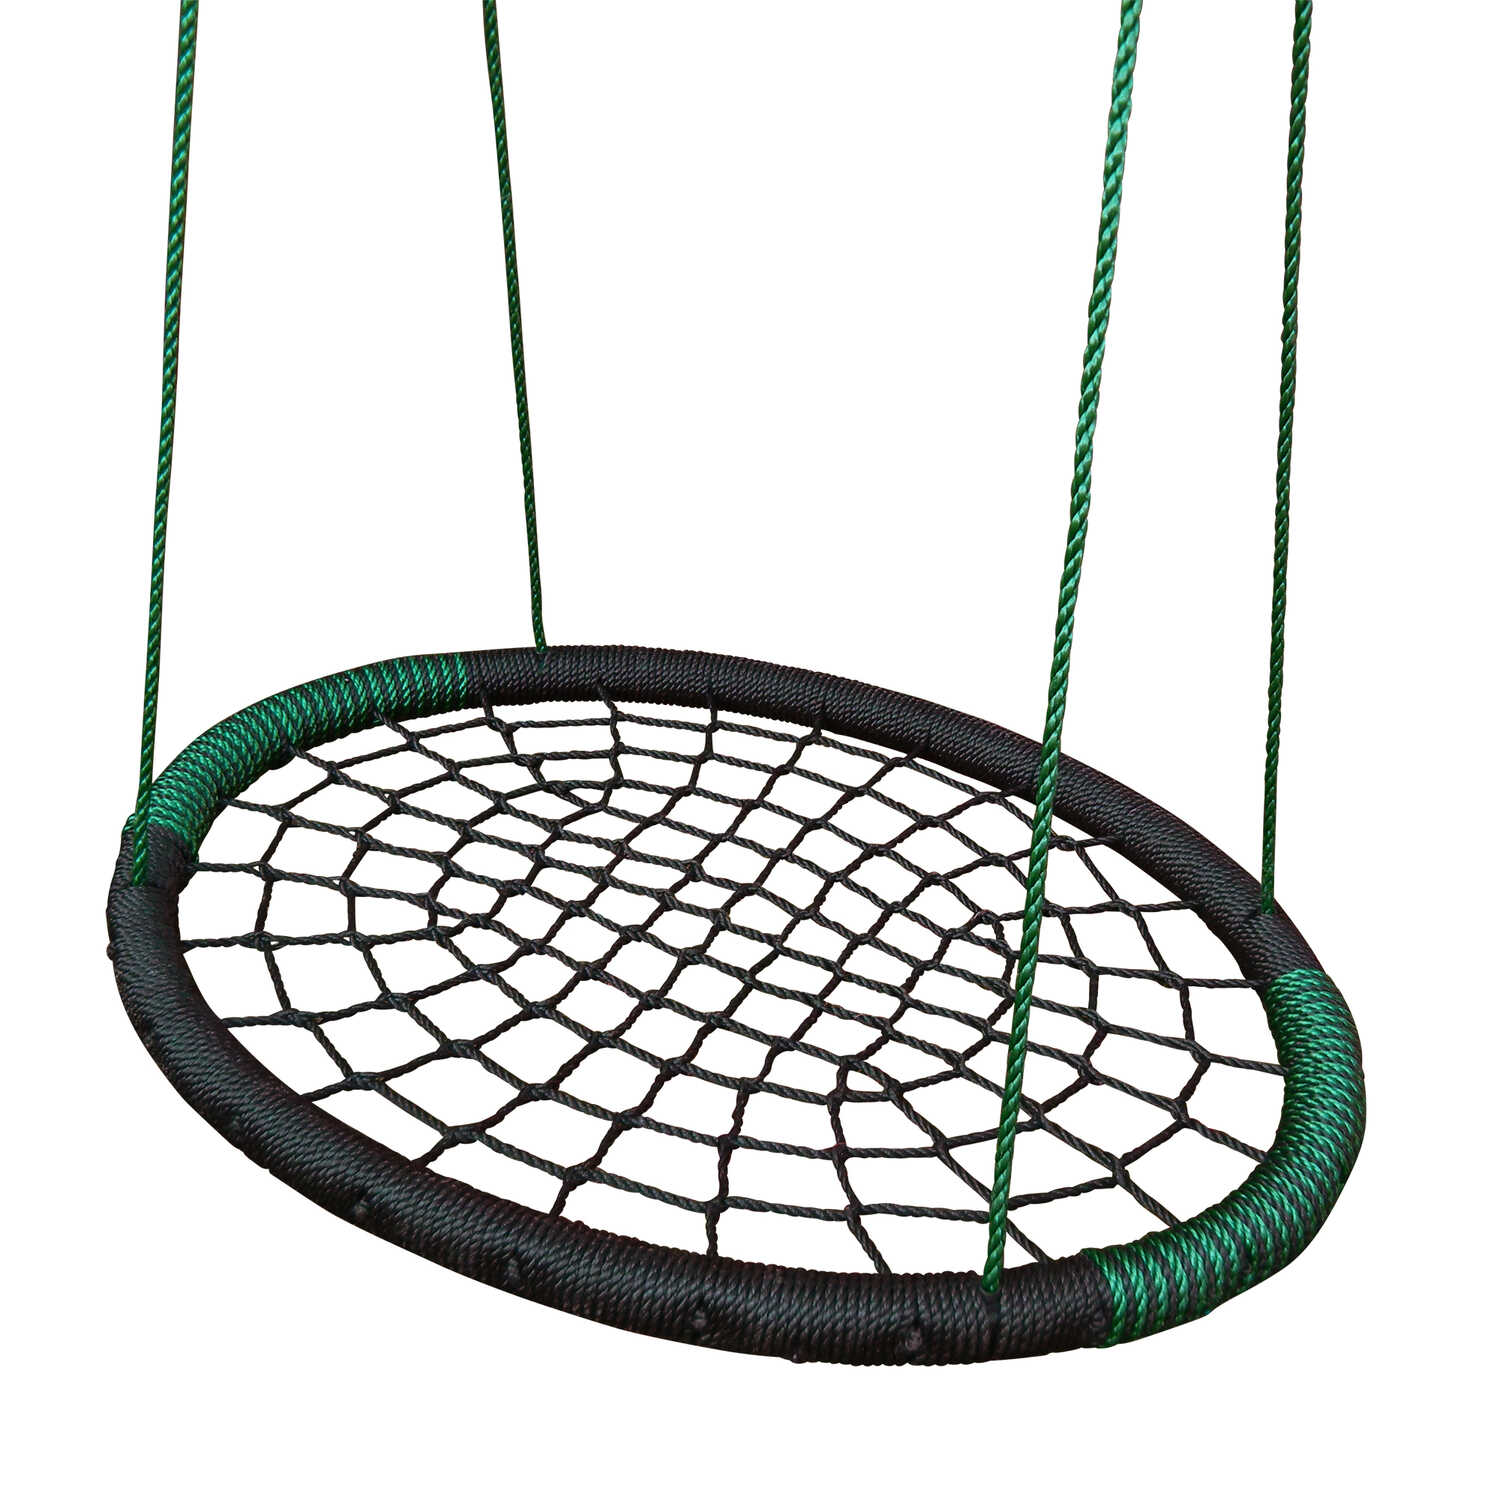 Swing-N-Slide  Web Design  Polypropylene  62-1/4 in. 33 in. 250 lb. 42 in. Kids Lawn Swing